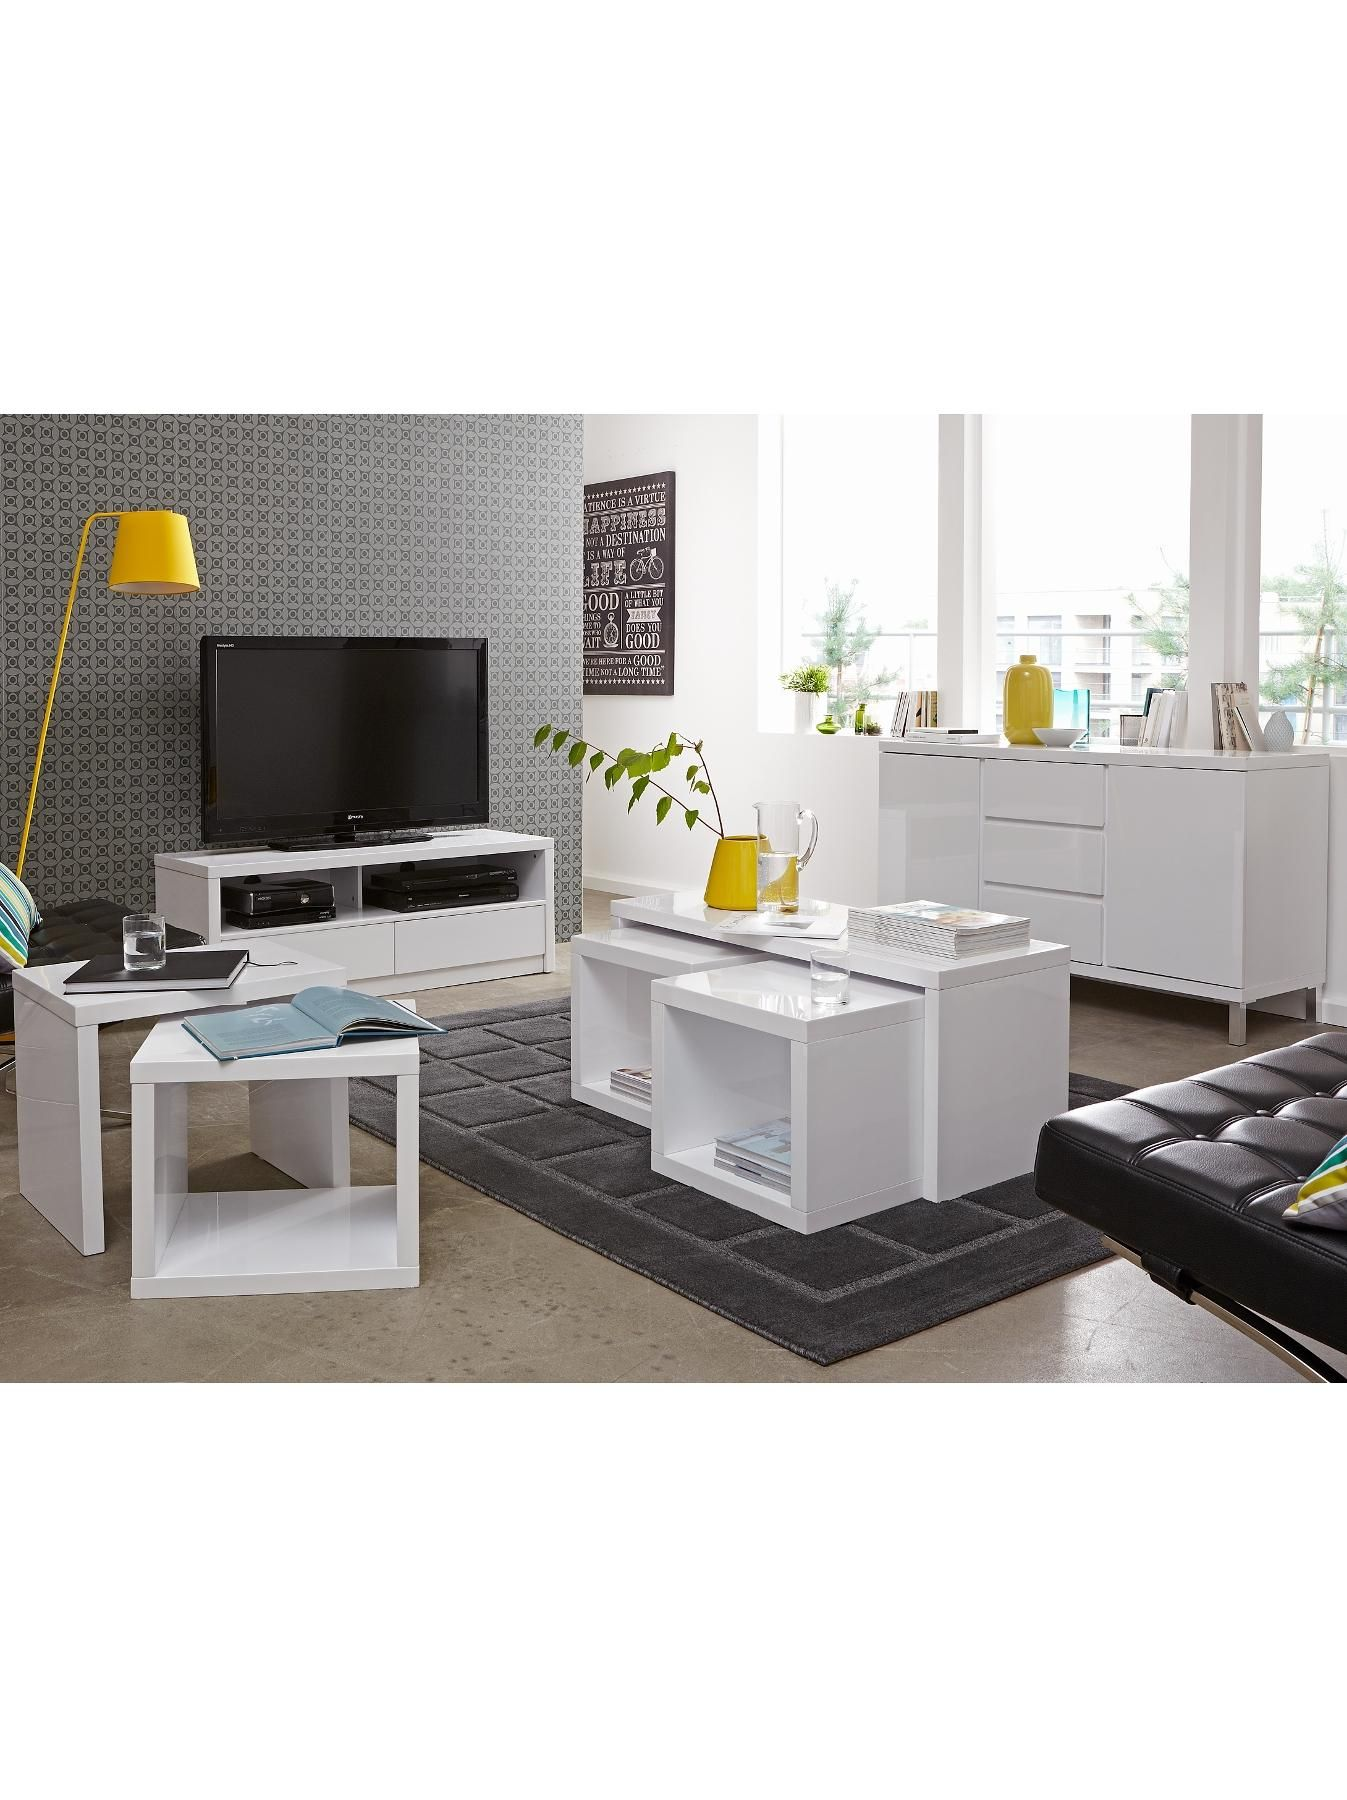 Littlewoods Ireland Online Shopping Fashion Homeware Coffee Table White Large Sideboard White Gloss Coffee Table